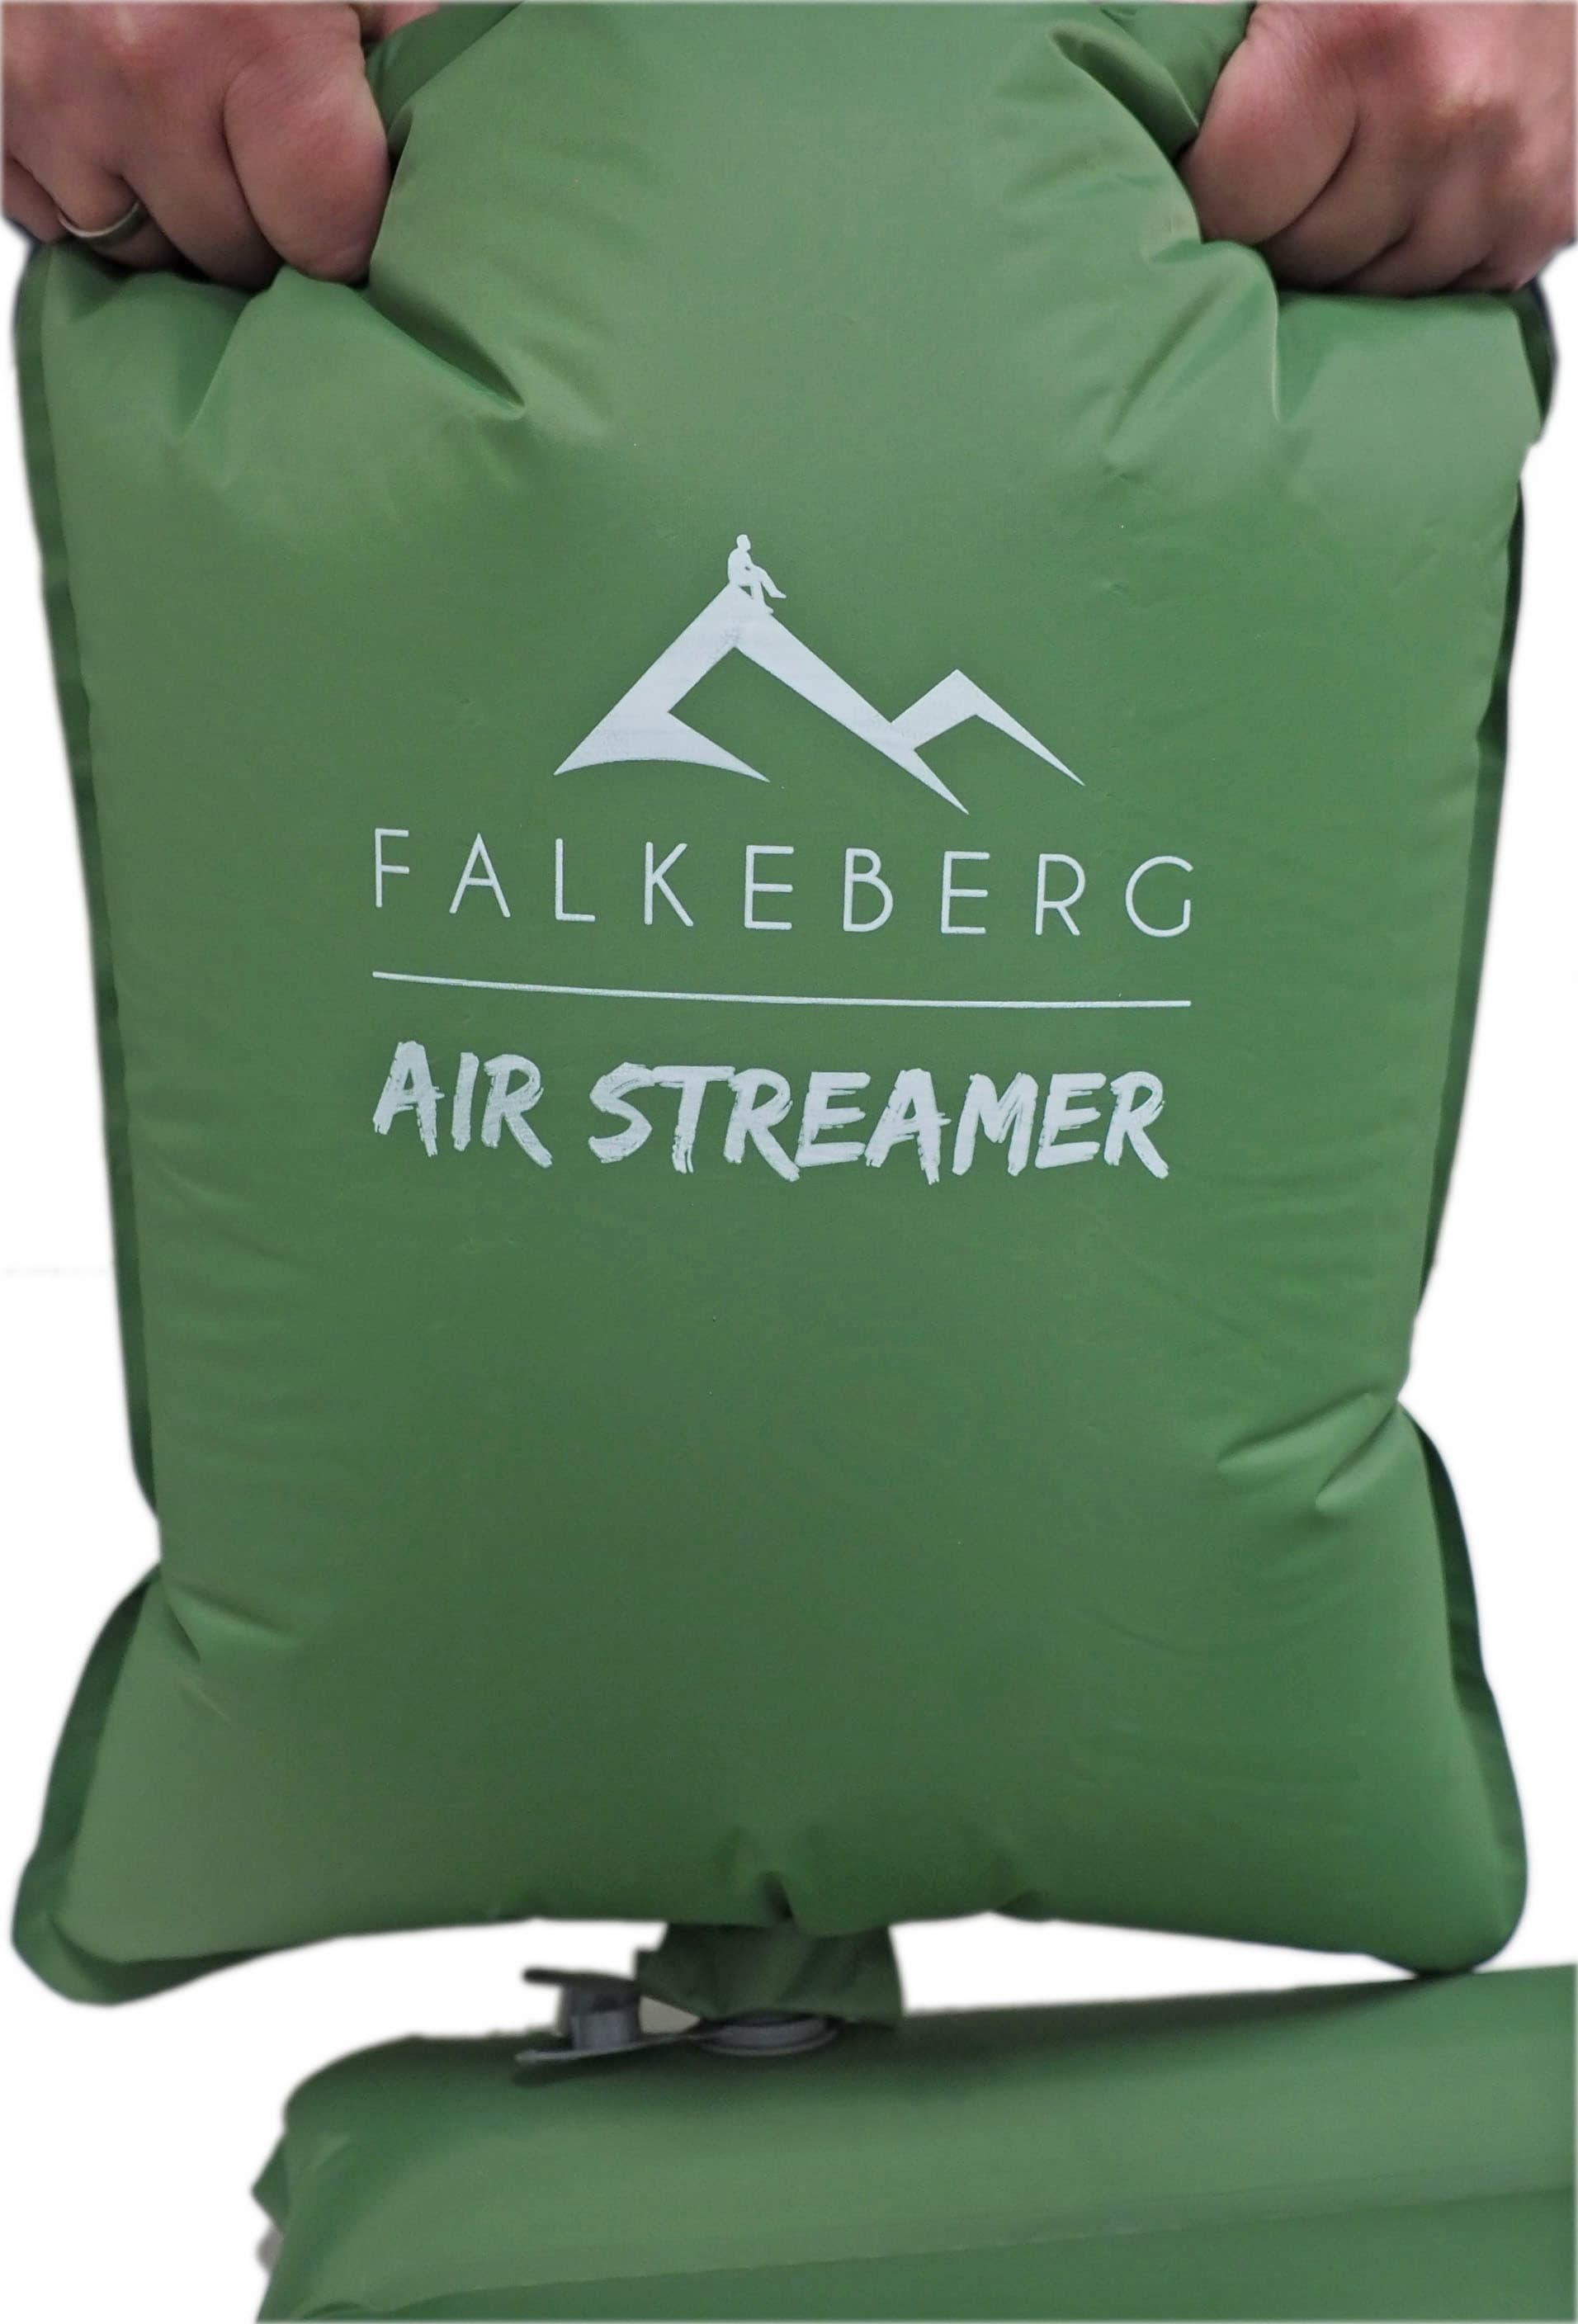 Falkeberg Air Streamer 3